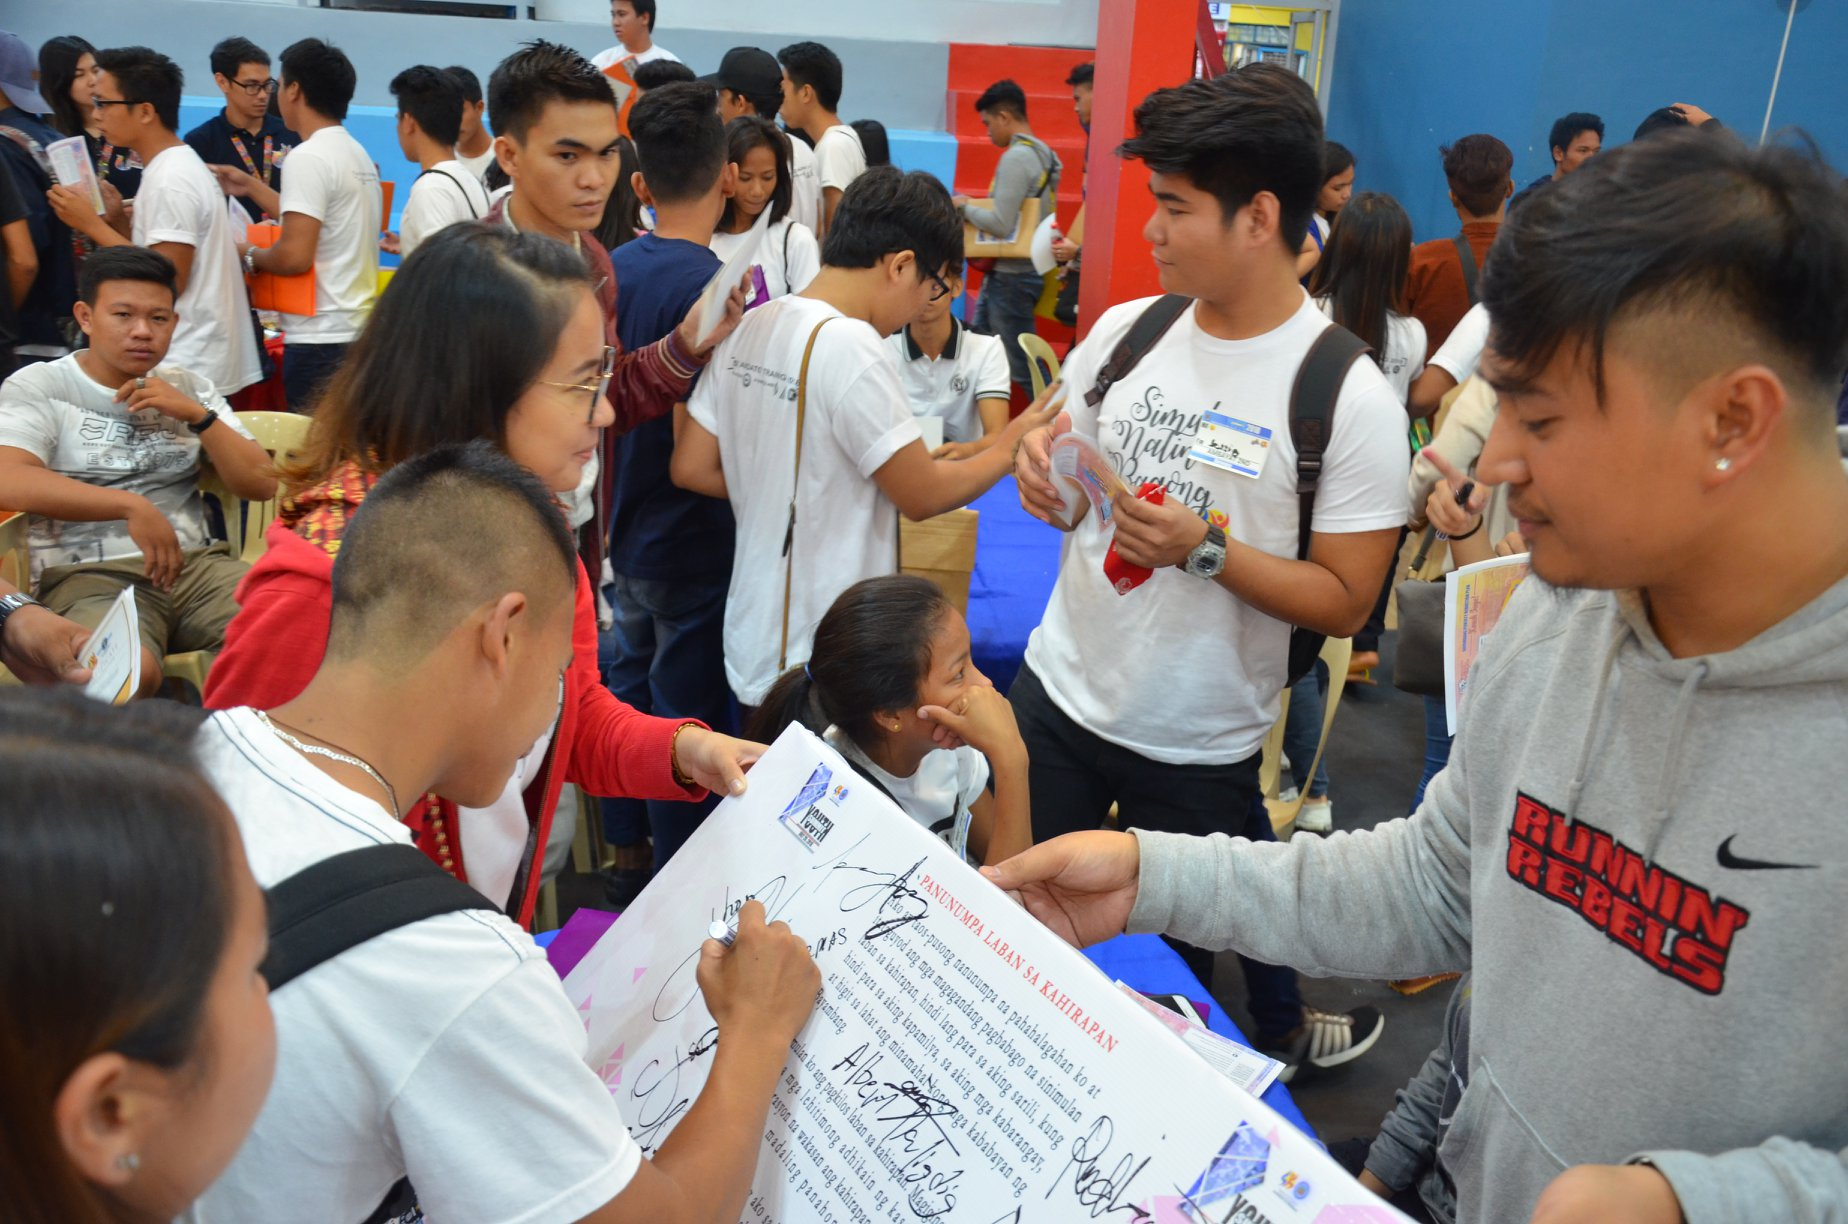 SK officials converge in Youth Summit